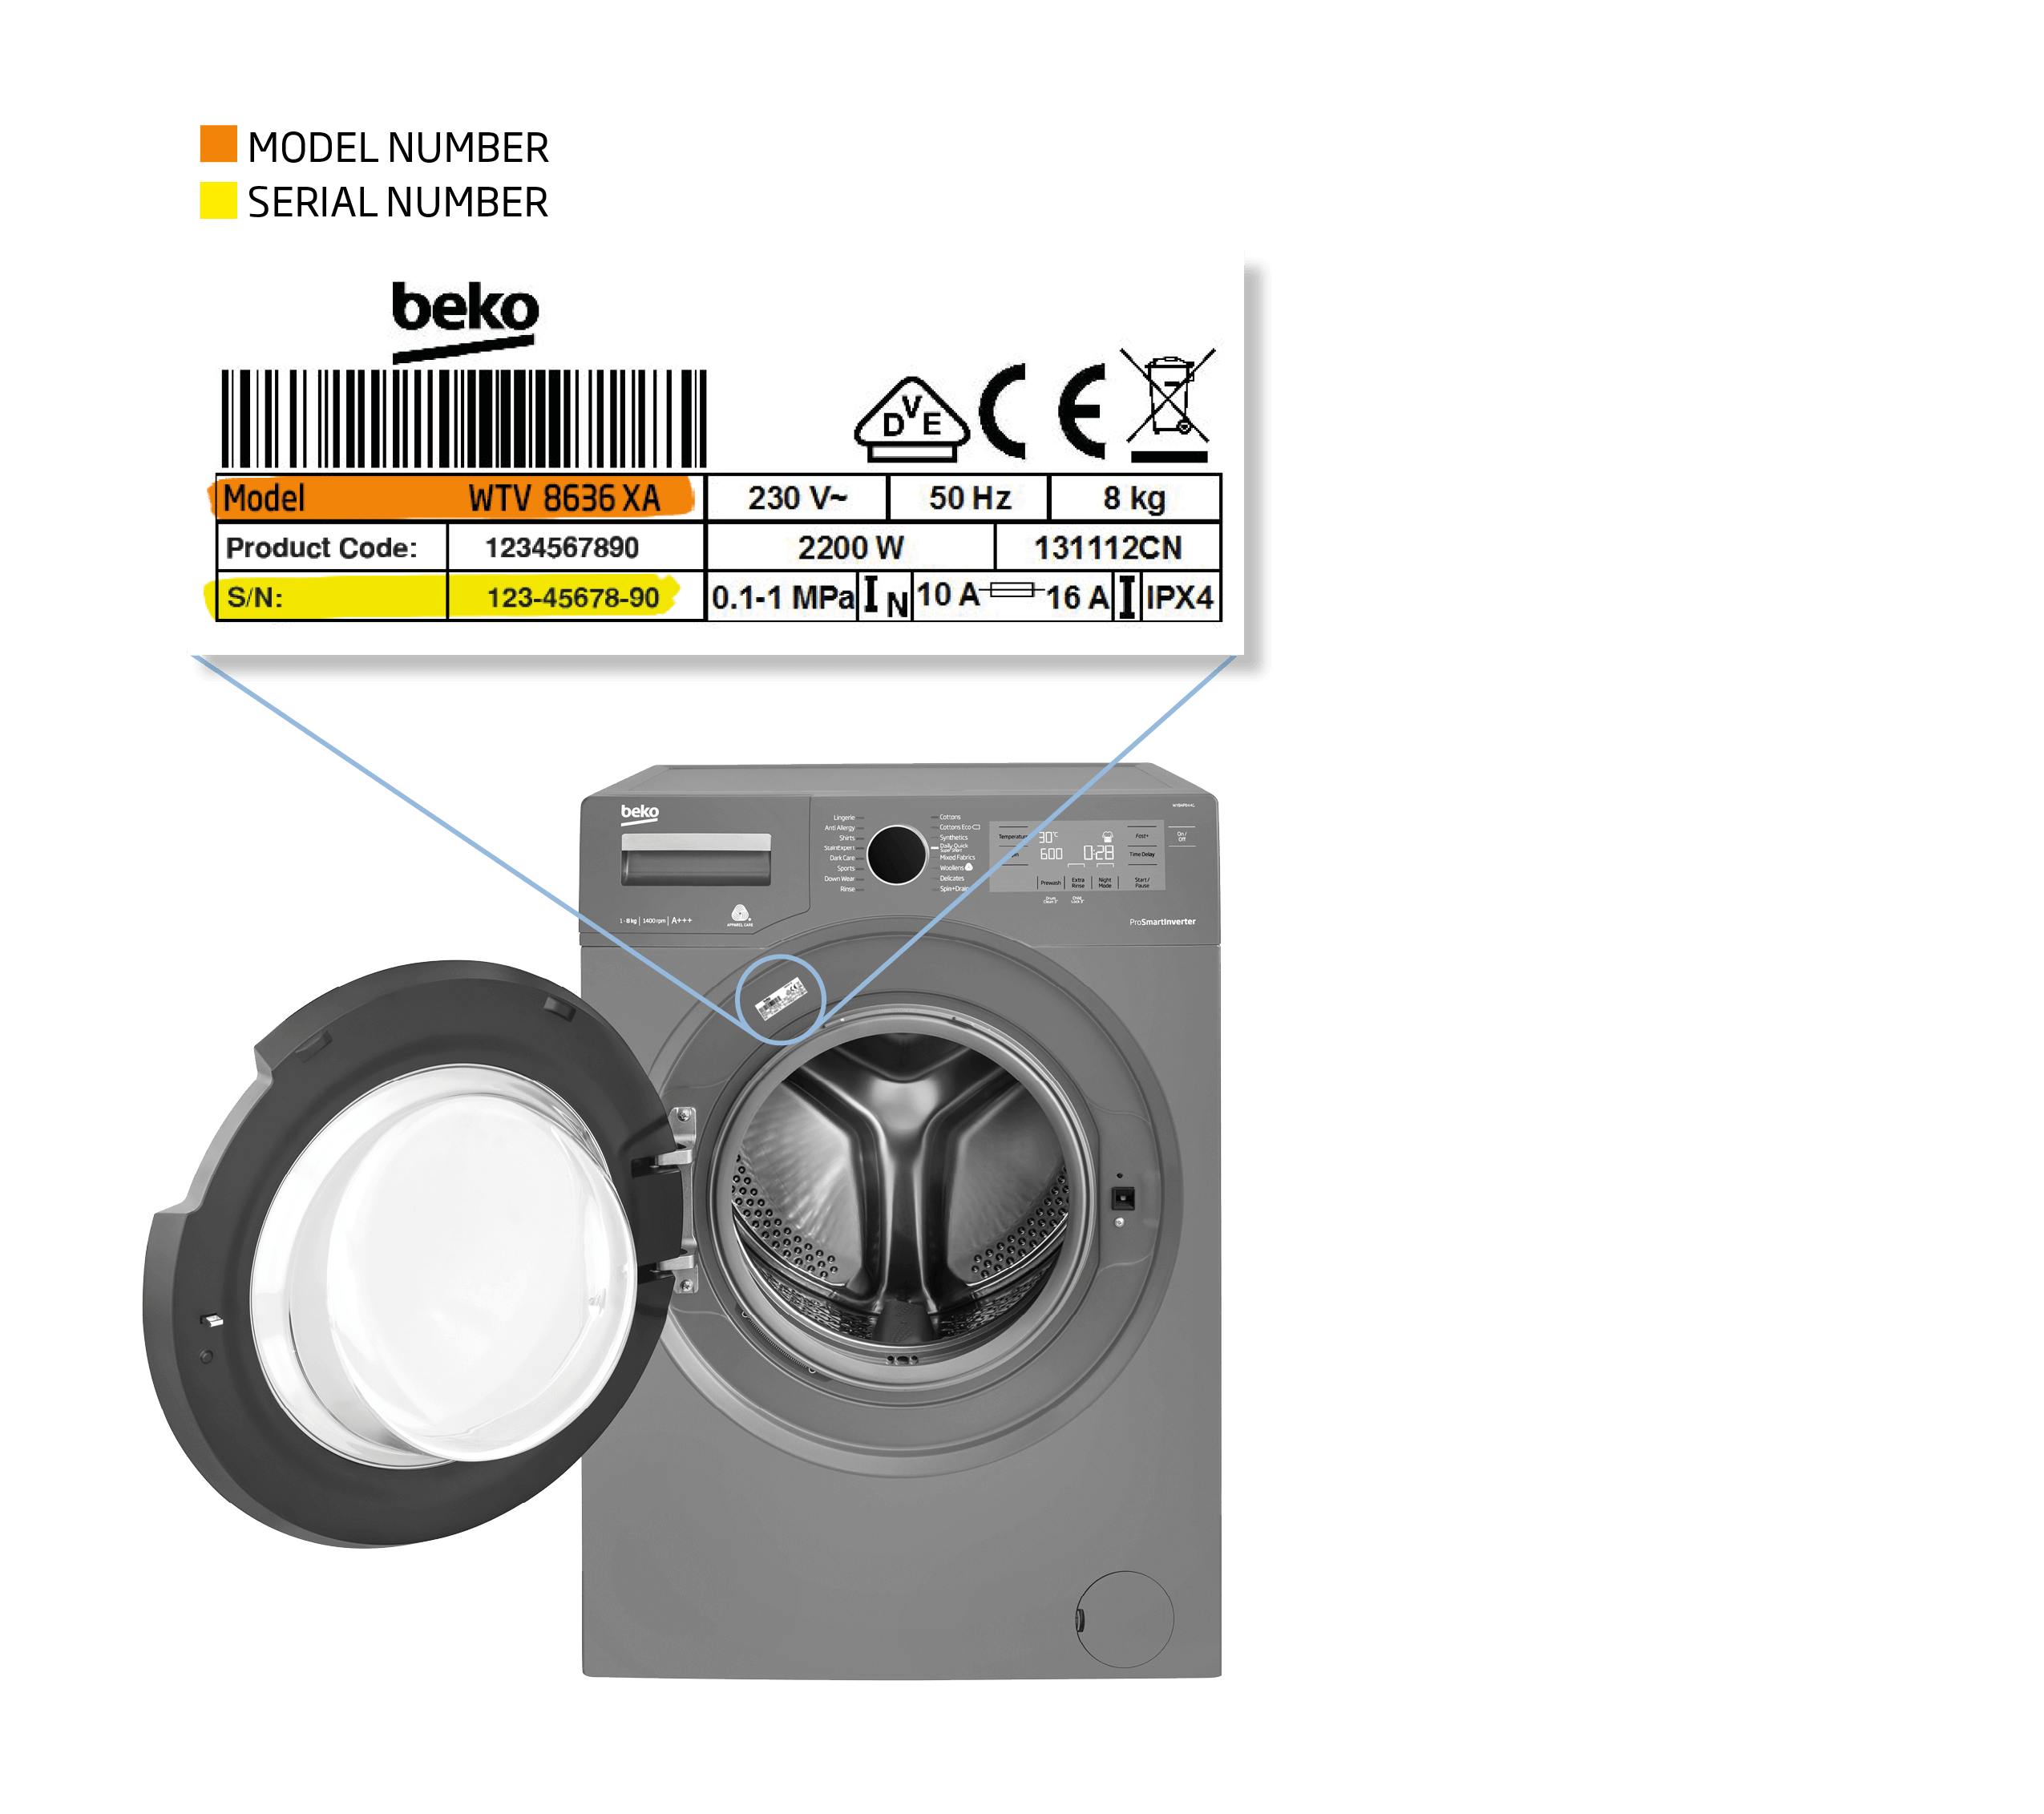 washing machine model number